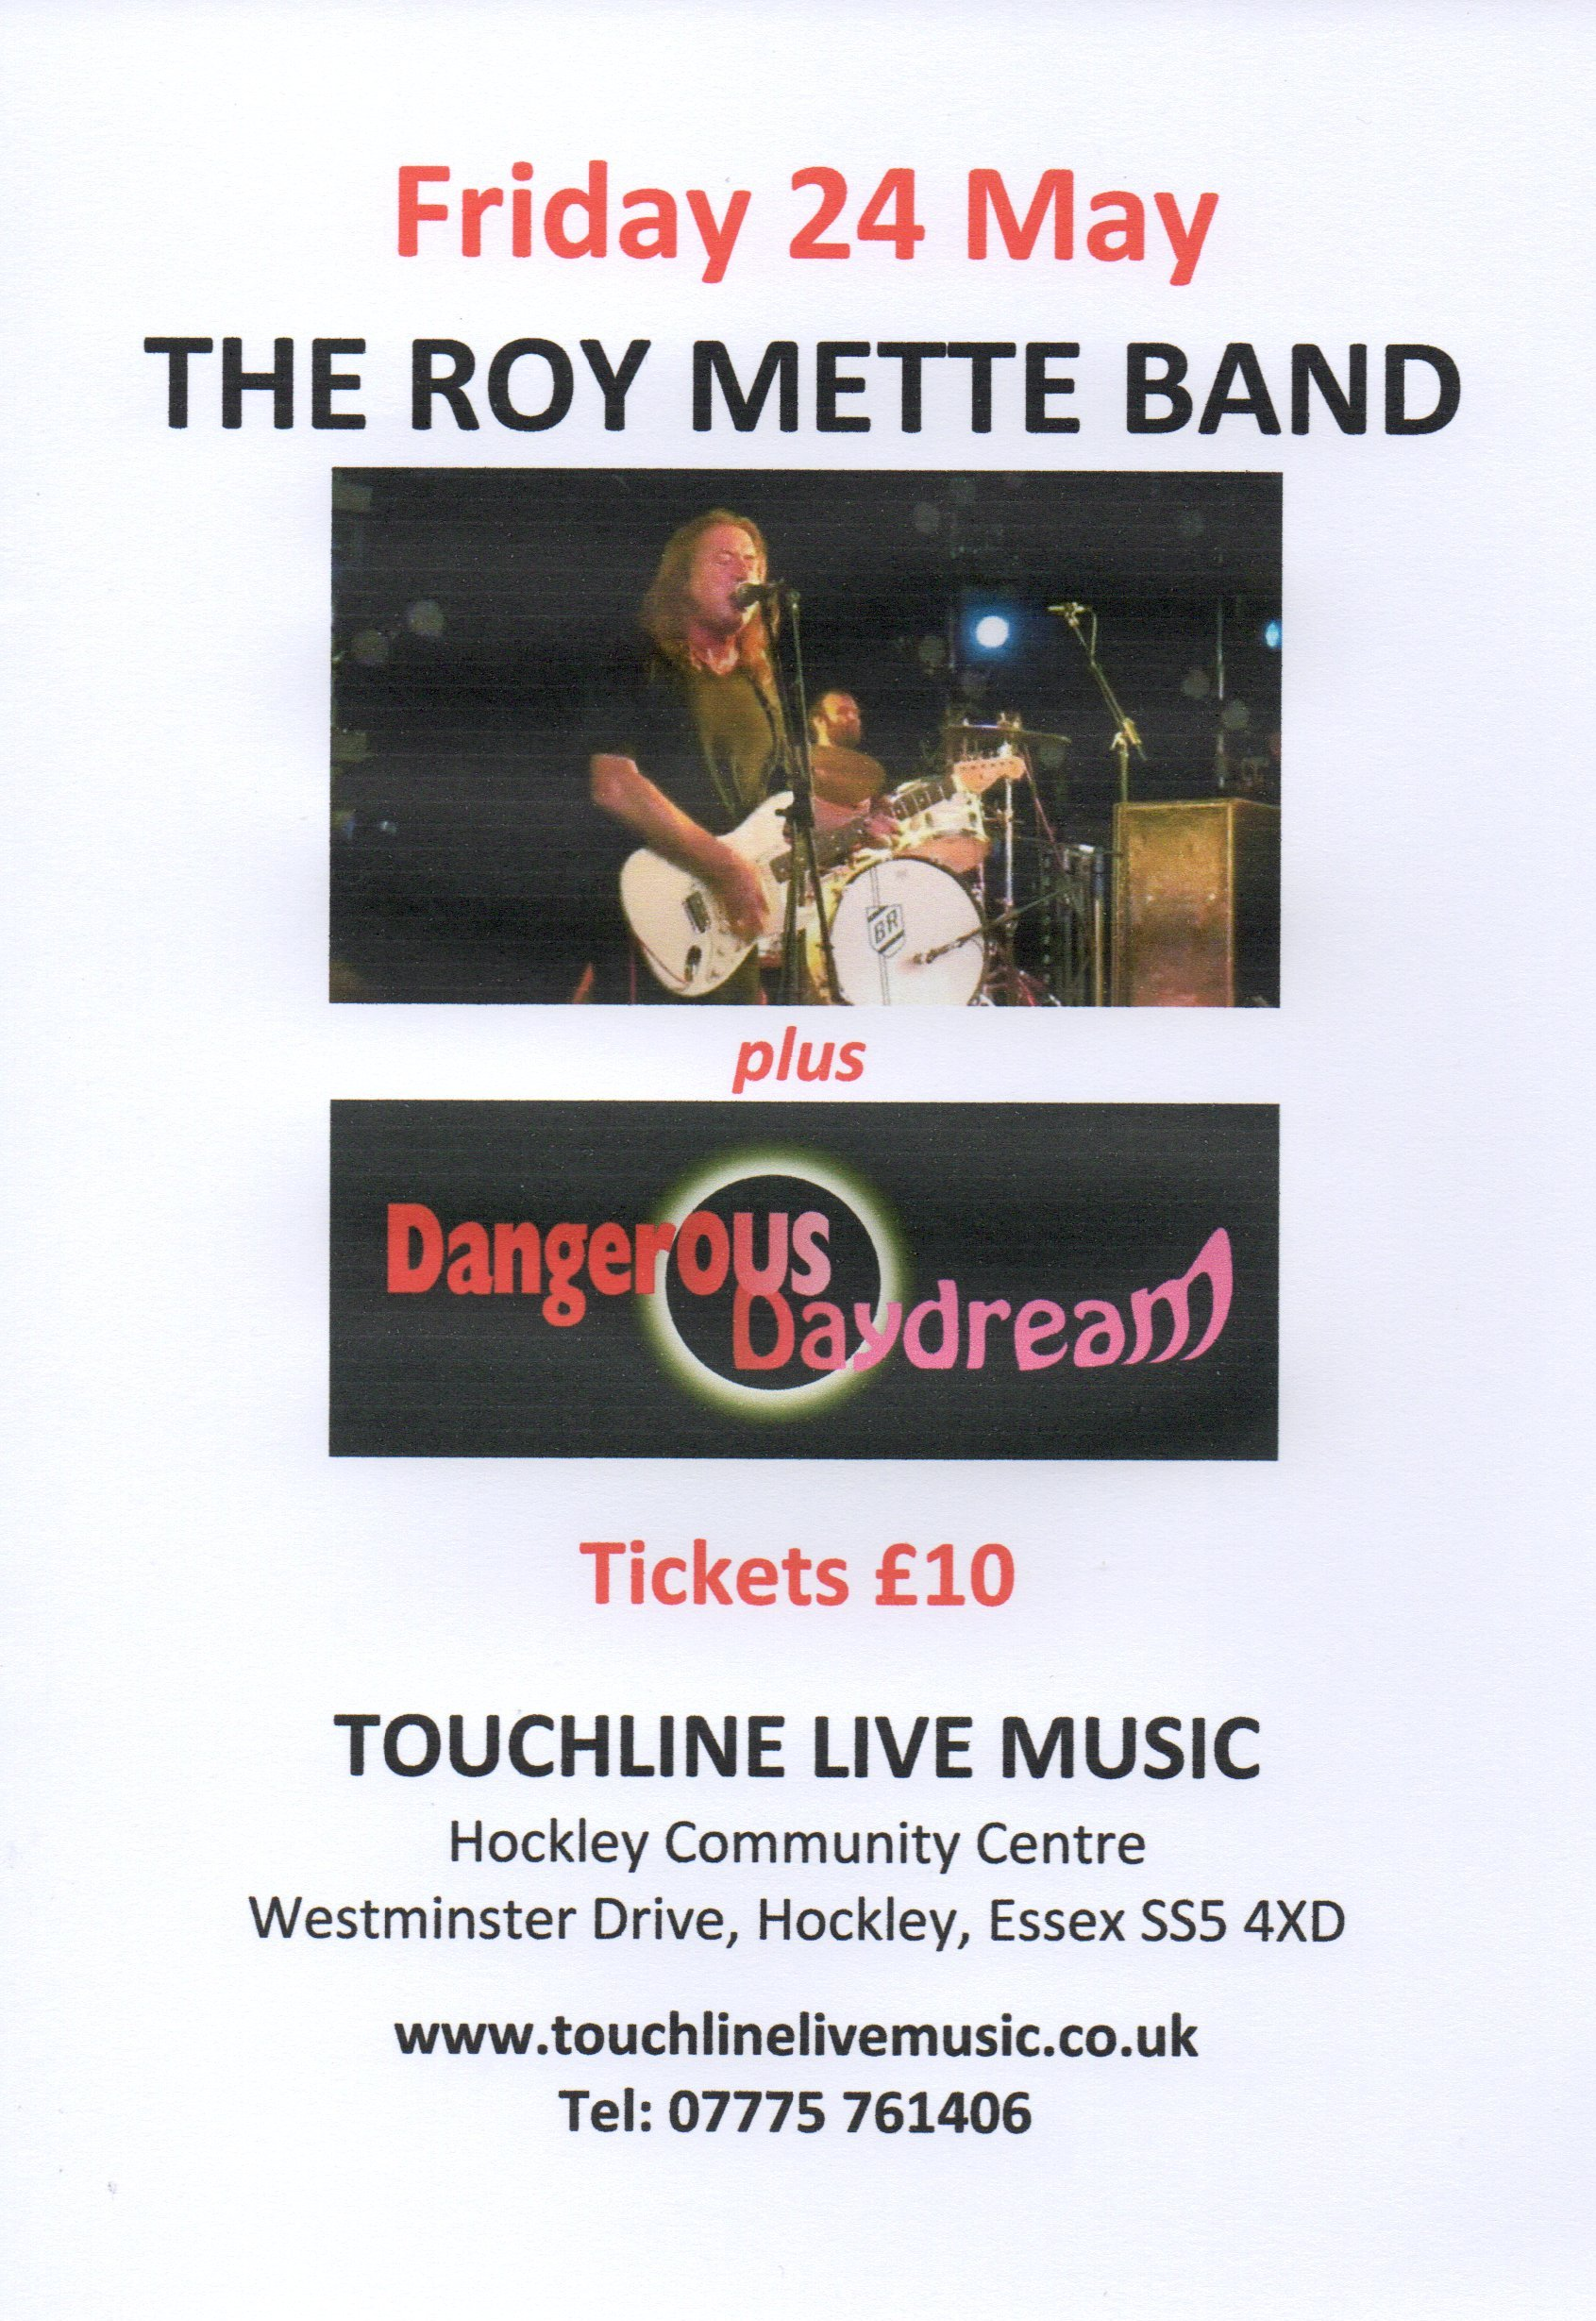 The Roy Mette Band + Dangerous Daydream